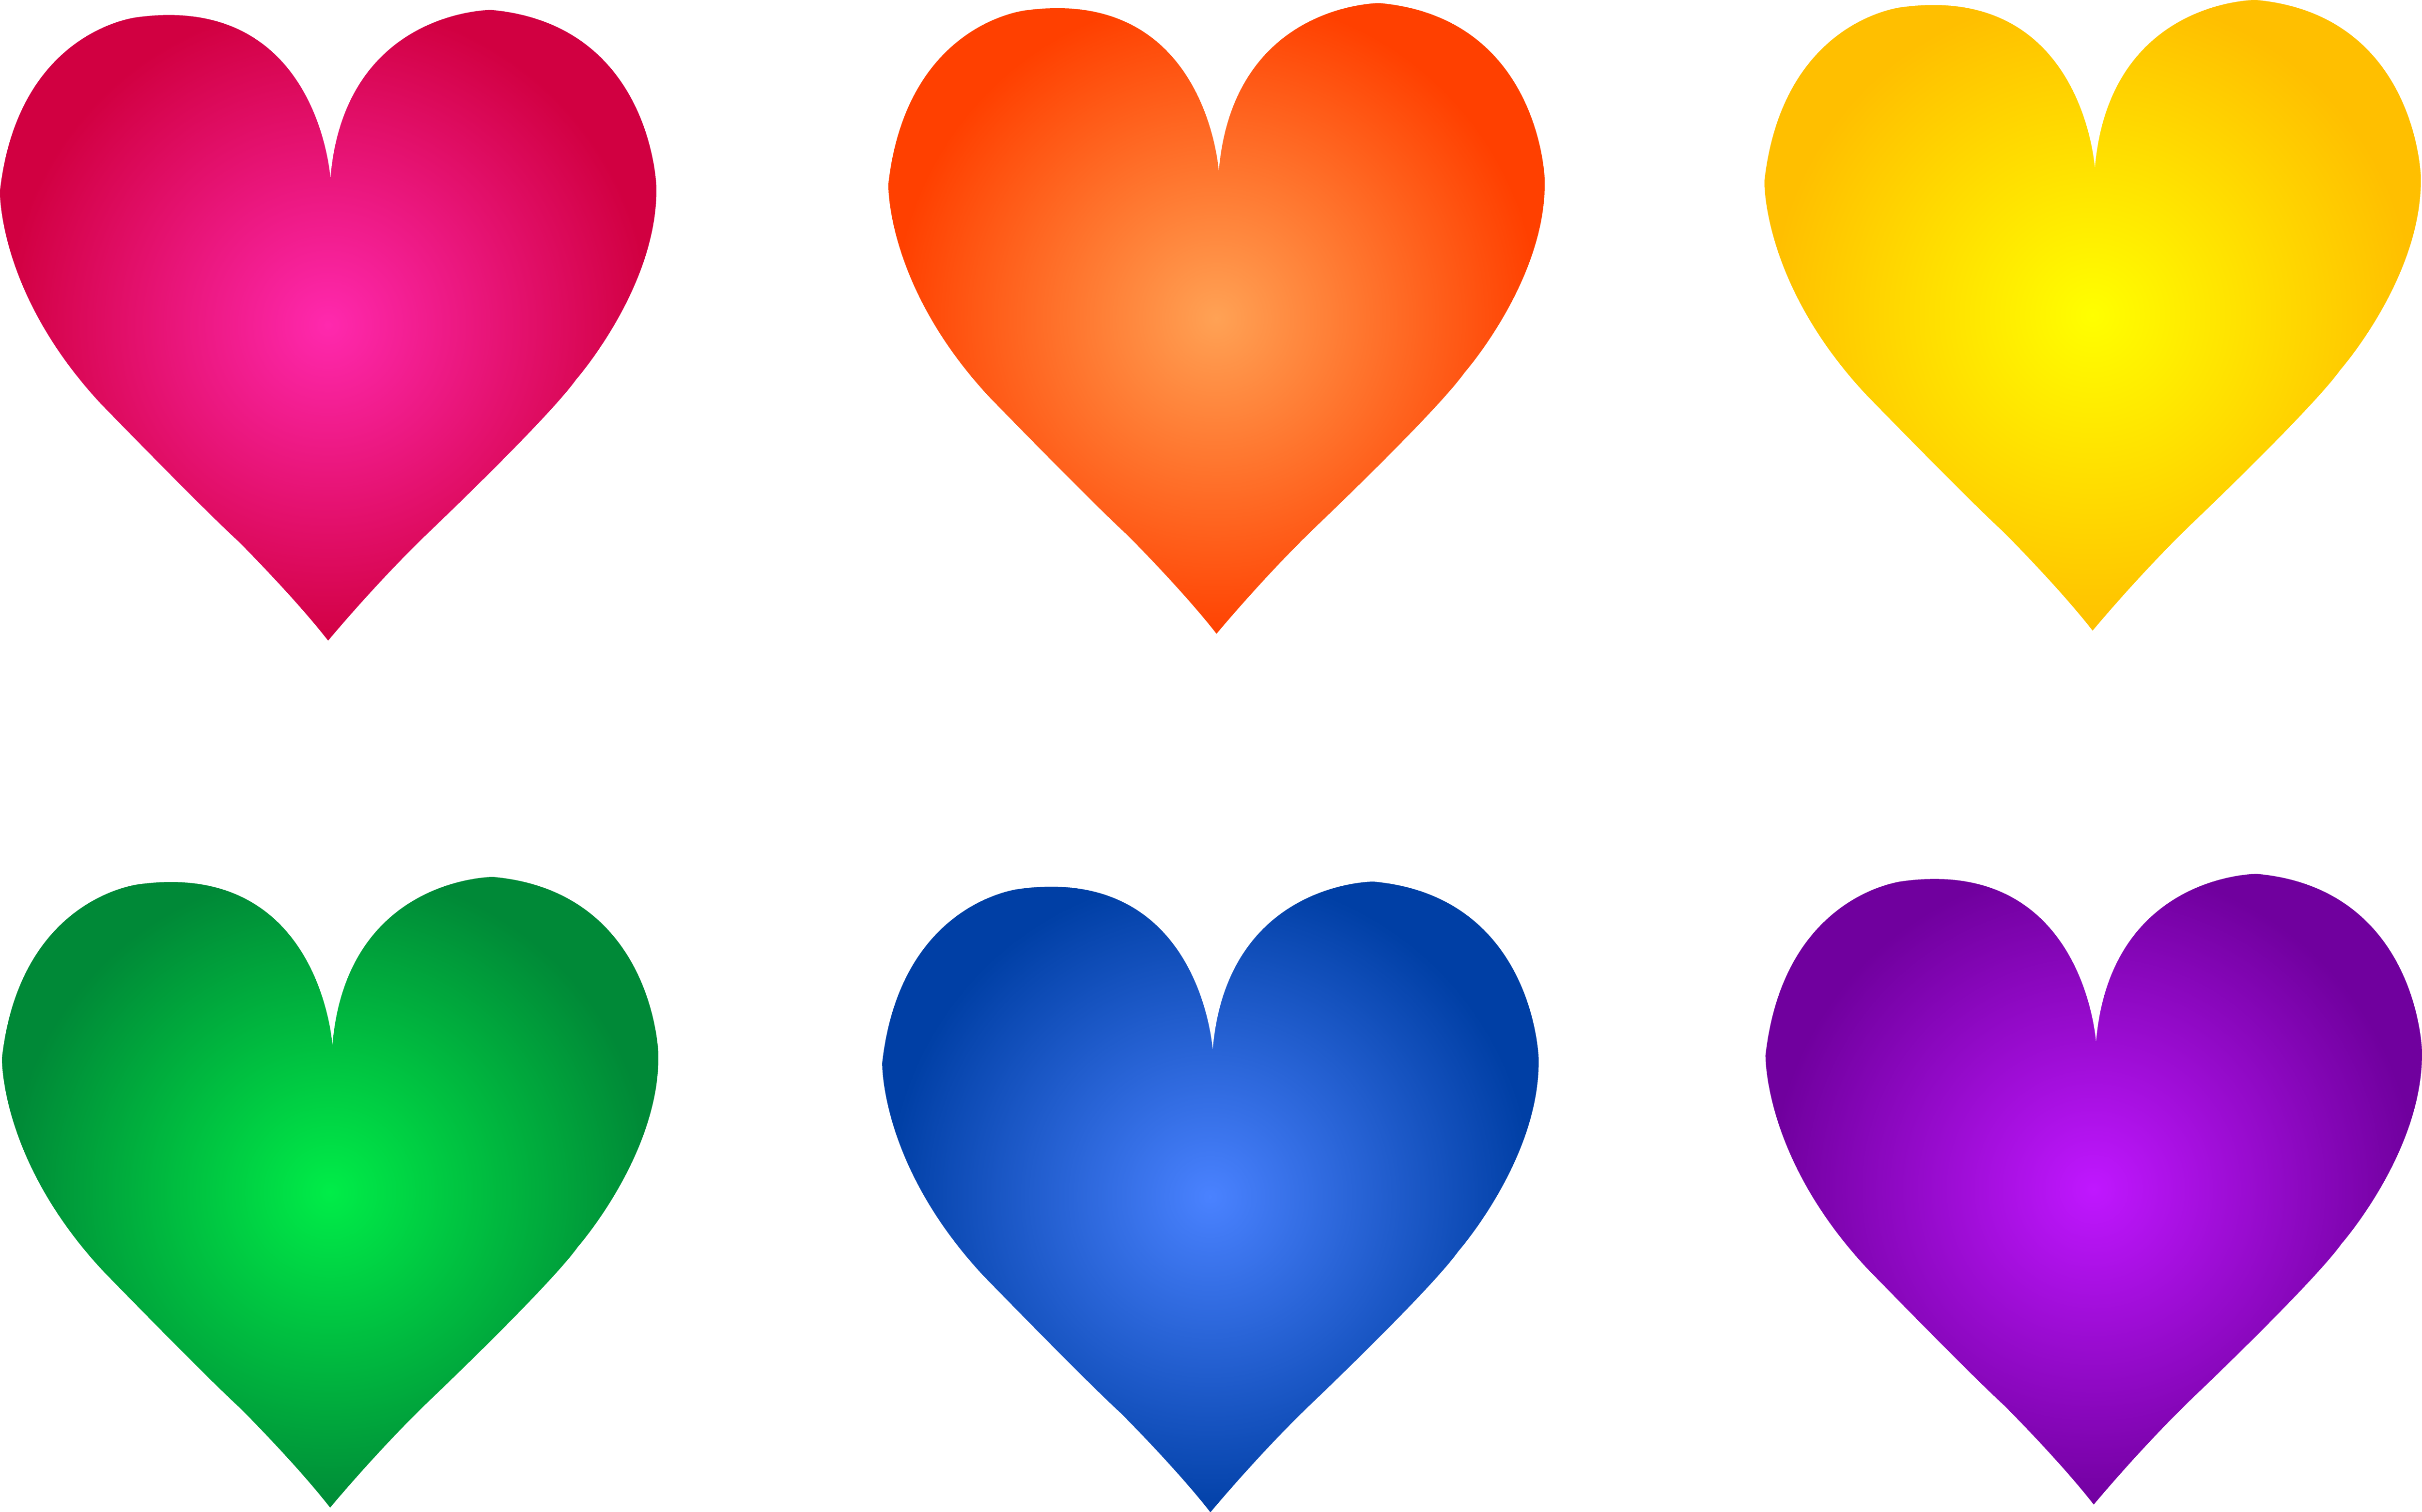 Transparent 5 colored. Collection of free clipart